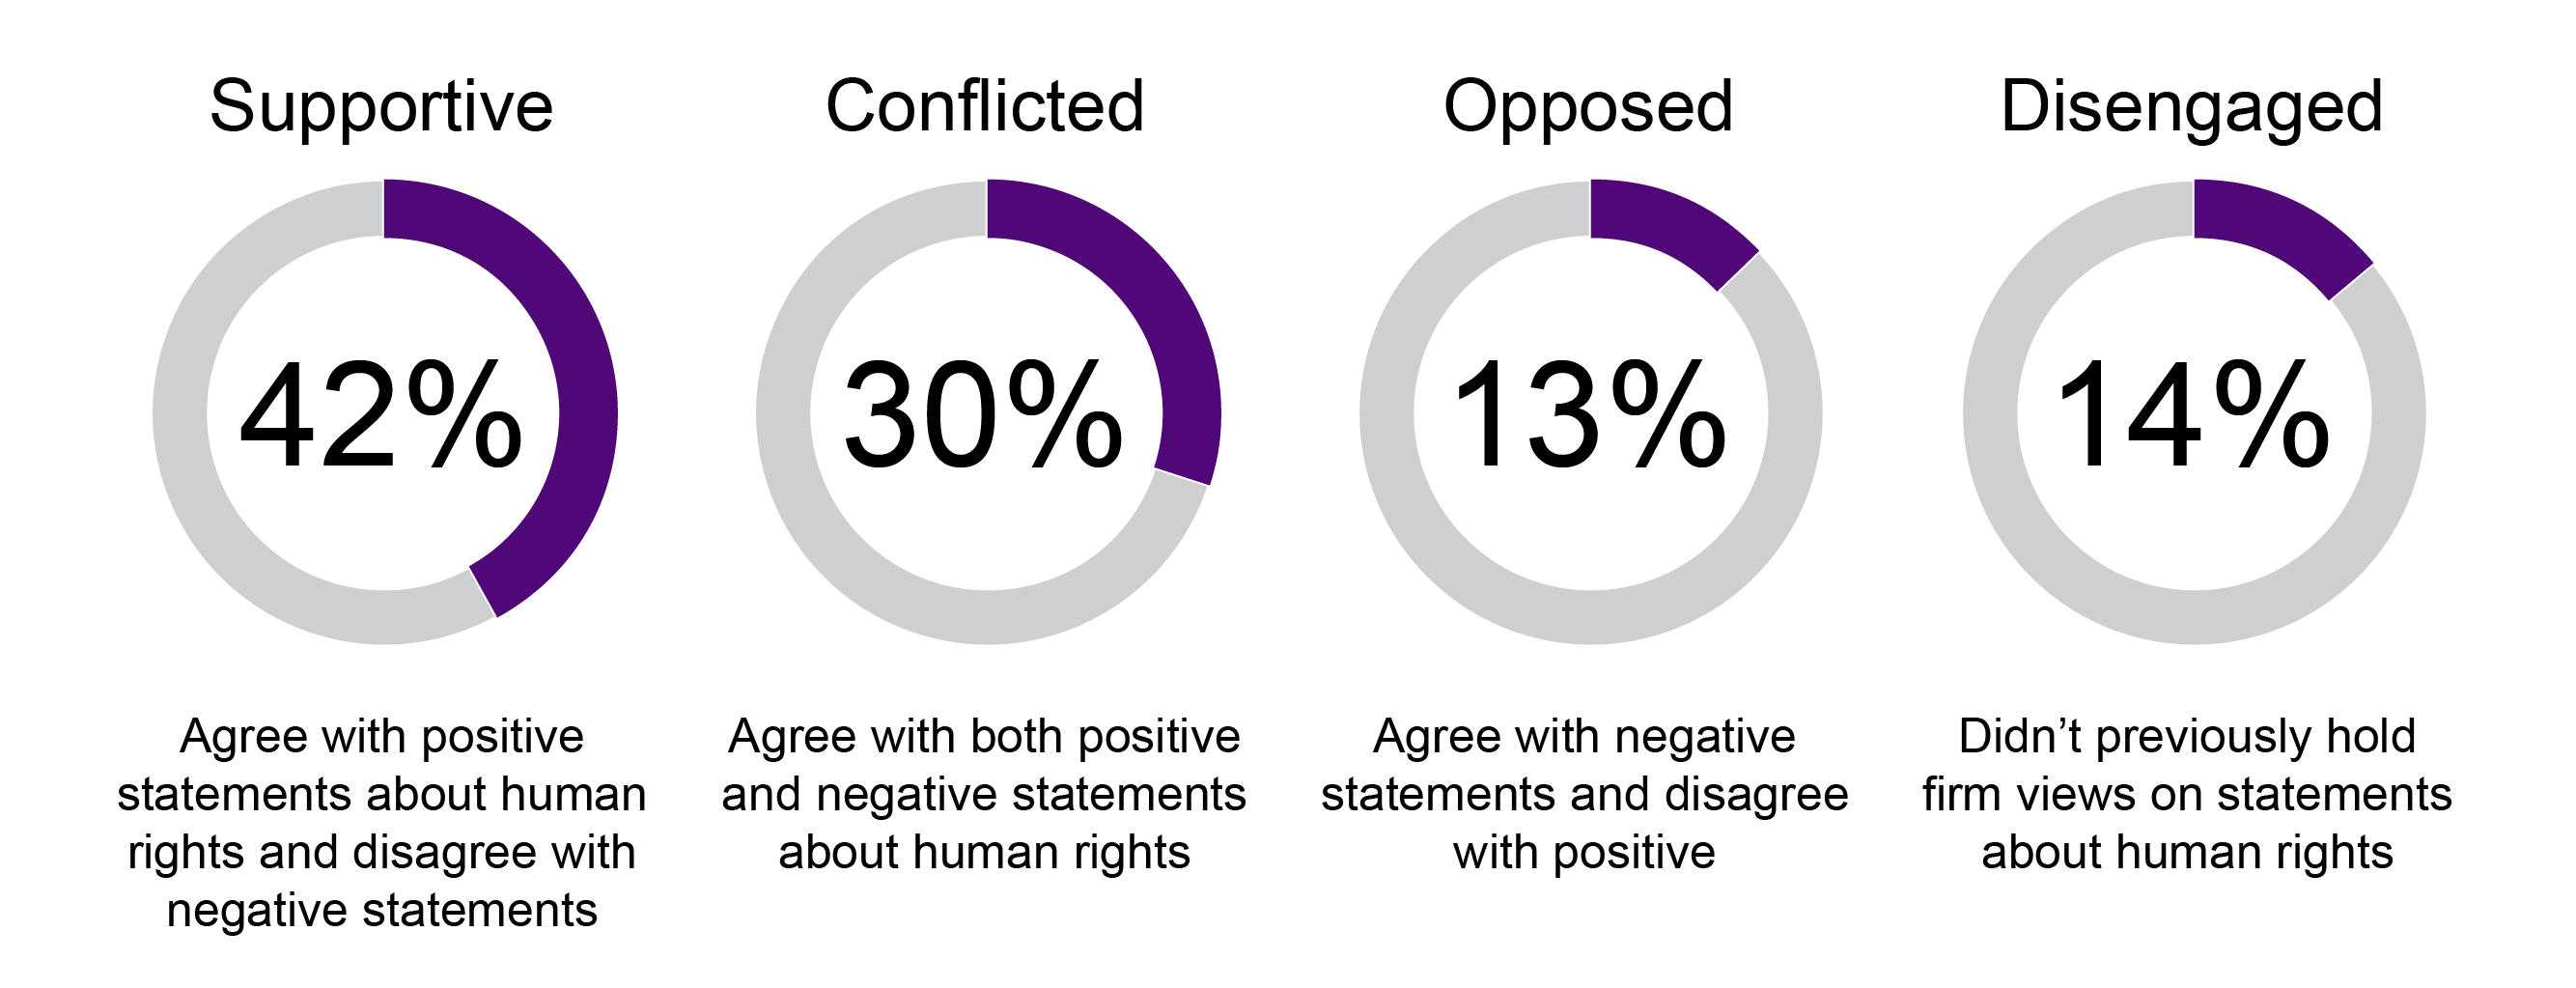 42% agree with positive statements about human rights and disagree with negative statements. 30% agree with both positive and negative statements about human rights. 13% agree with negative statements and disagree with positive. 14% didn't previously hold firm views on statements about human rights.